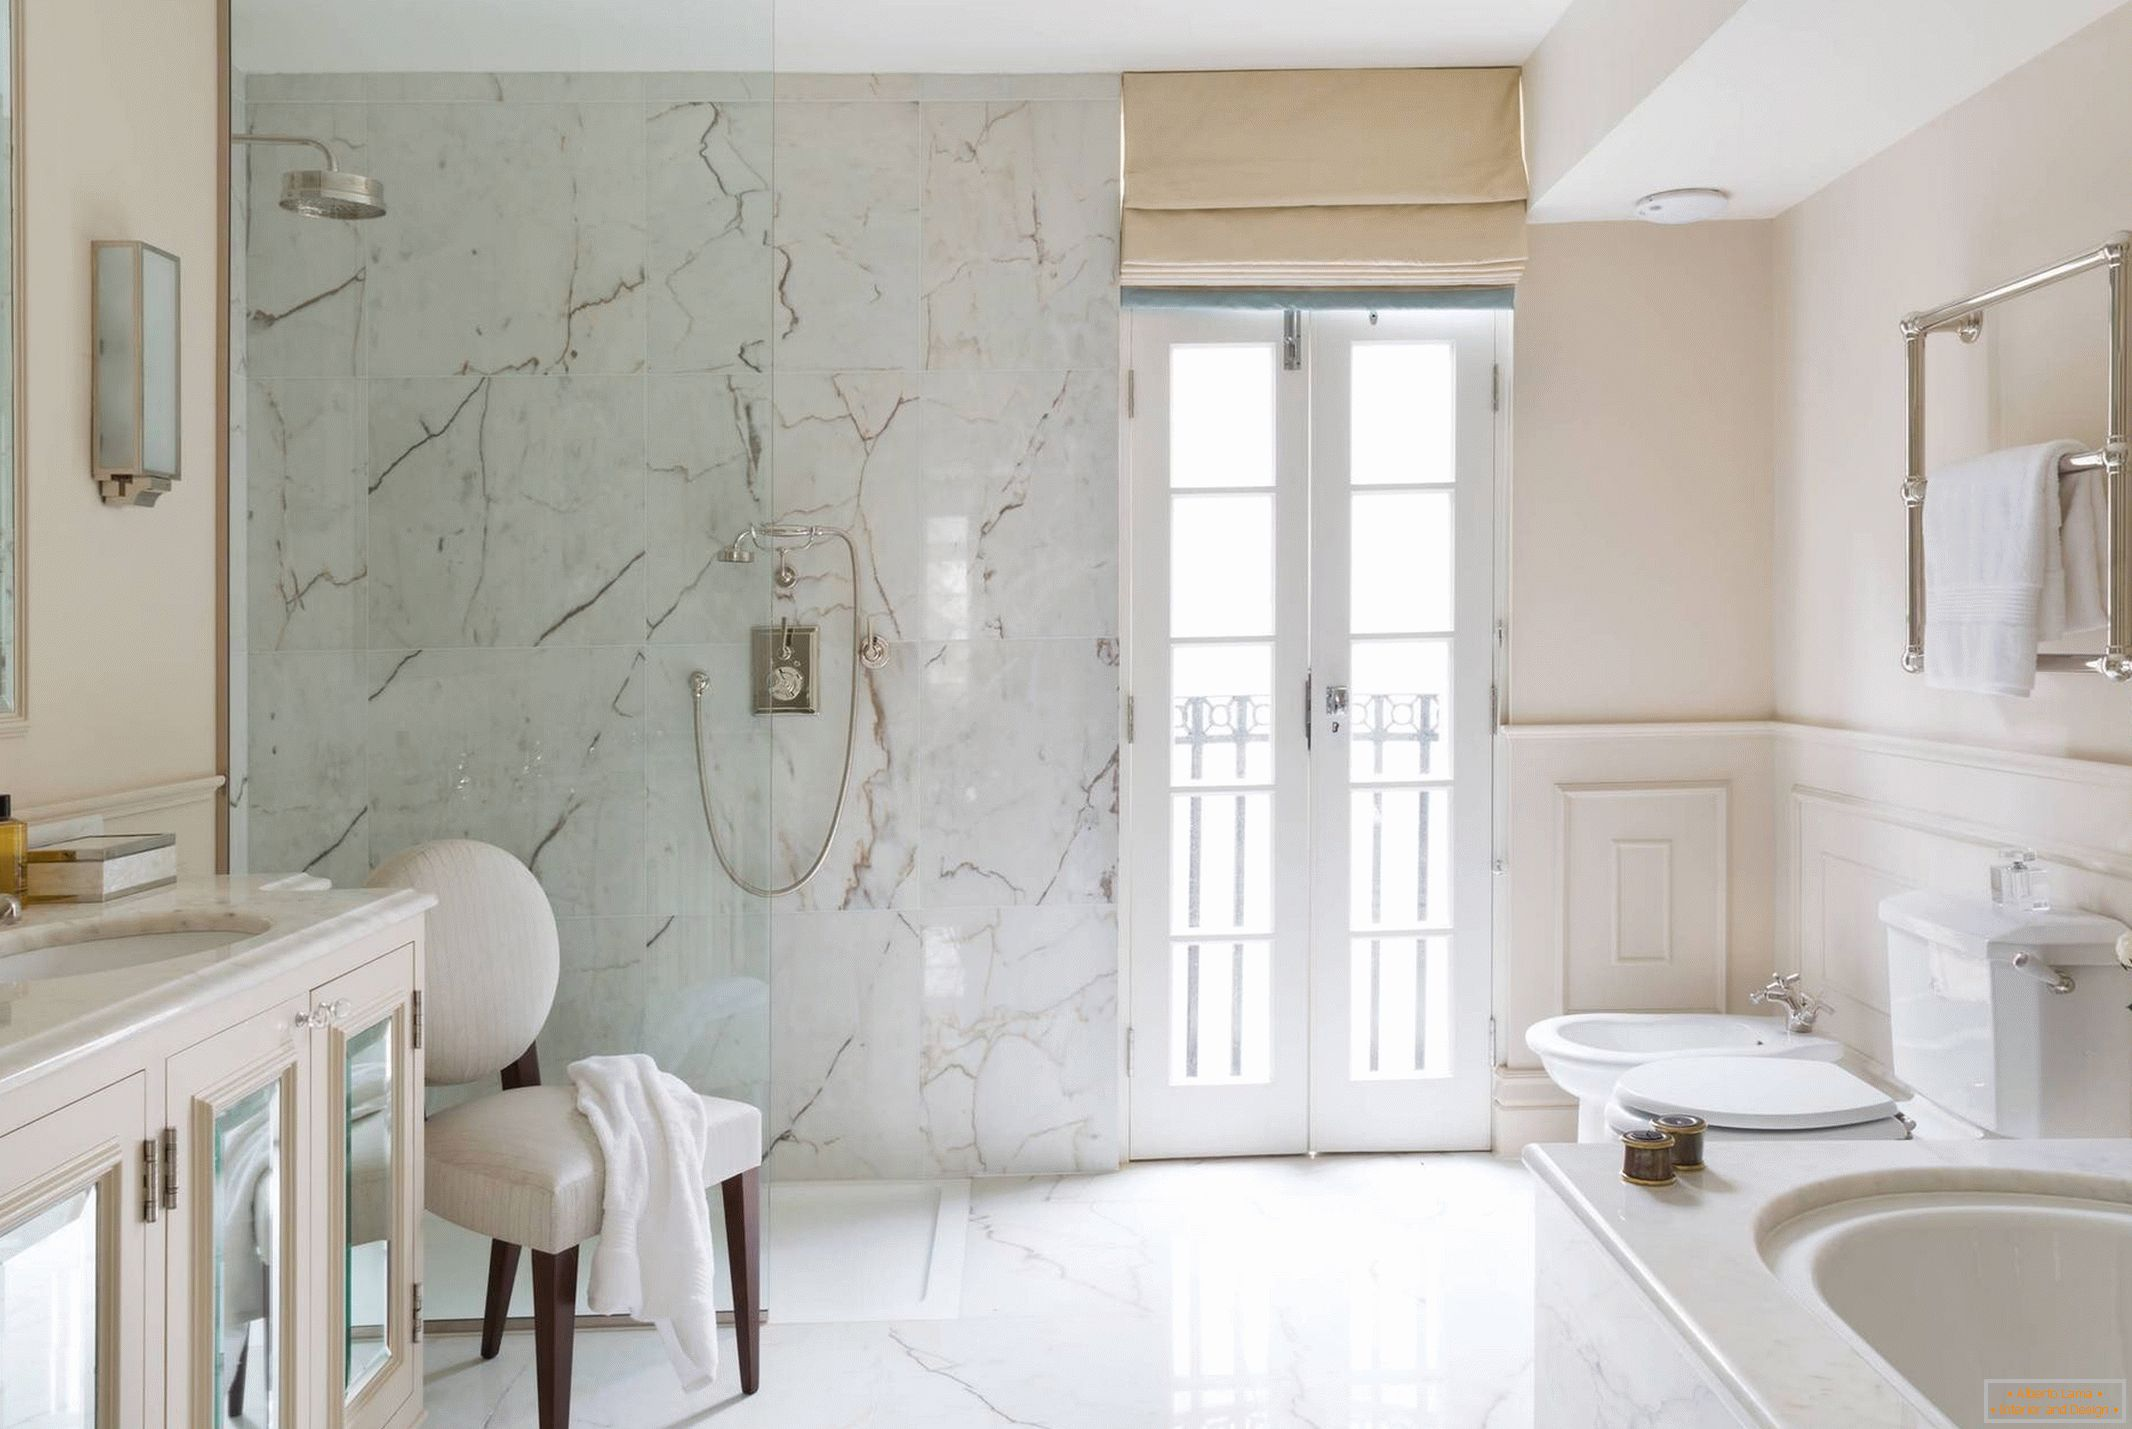 Marble wall and floor in the bathroom